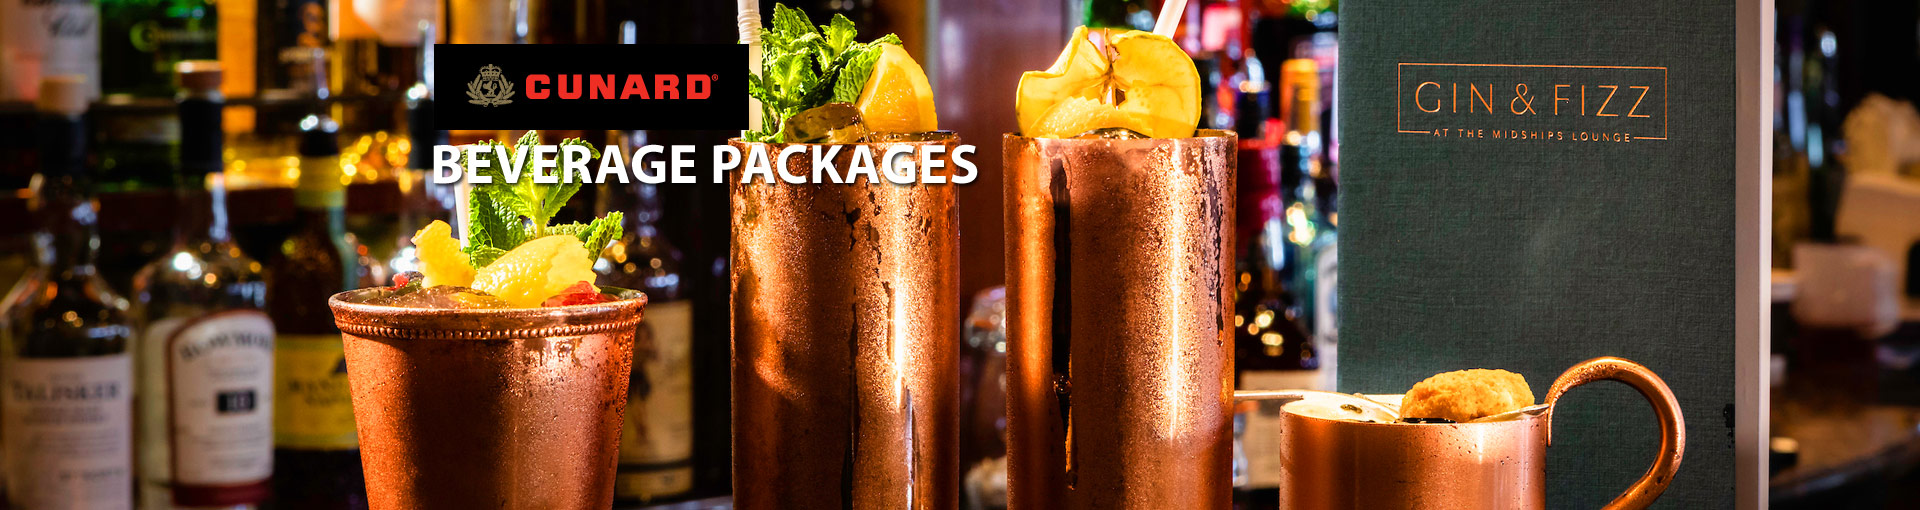 Cunard Drink Packages